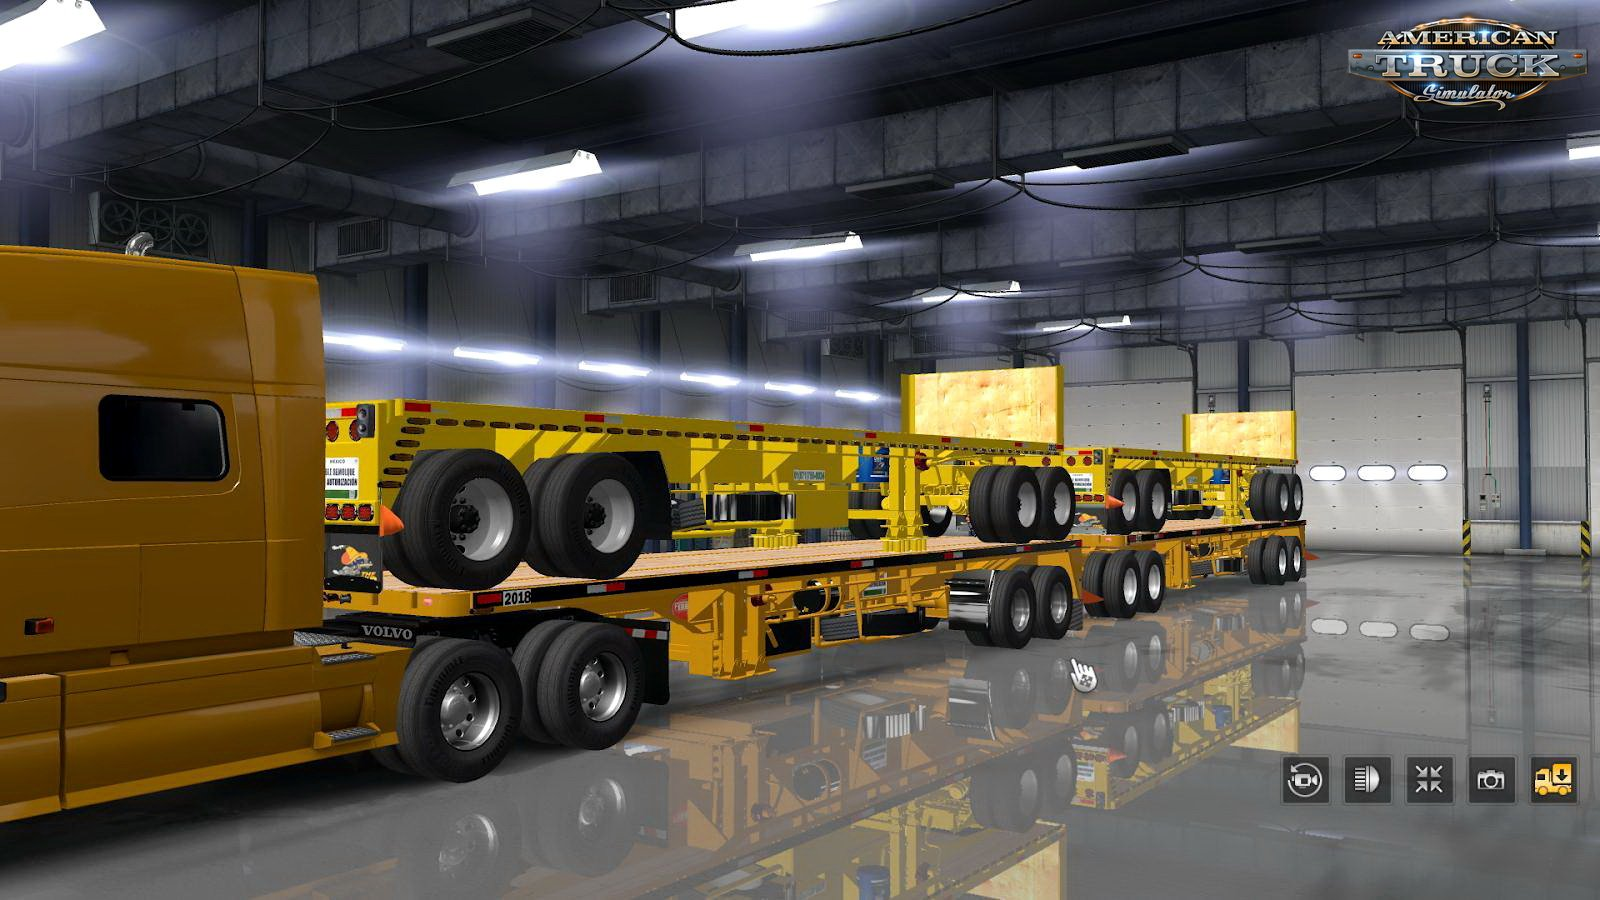 Trailer Flatbed Ferbus Owned with Mudflaps Animations v1.0 (1.33.x)